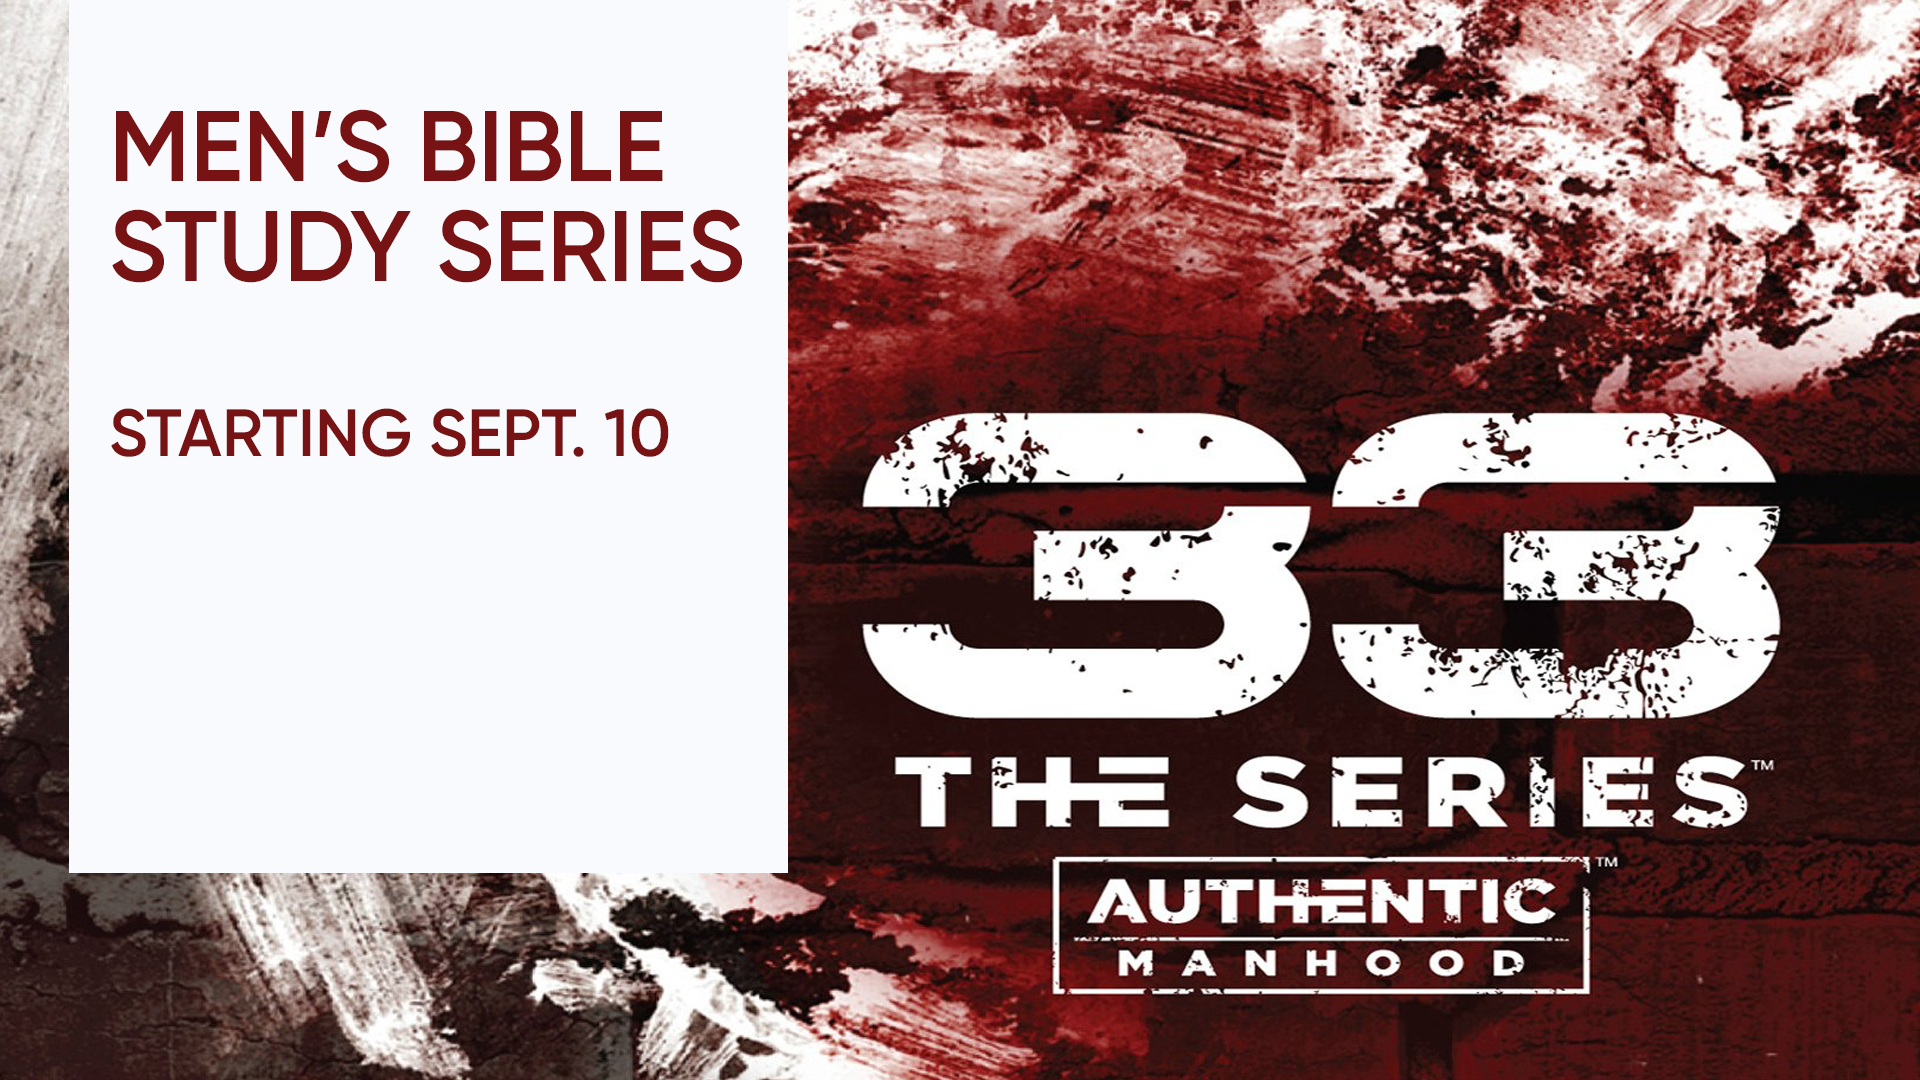 Men's Bible Study - Series 33: Authentic Manhood